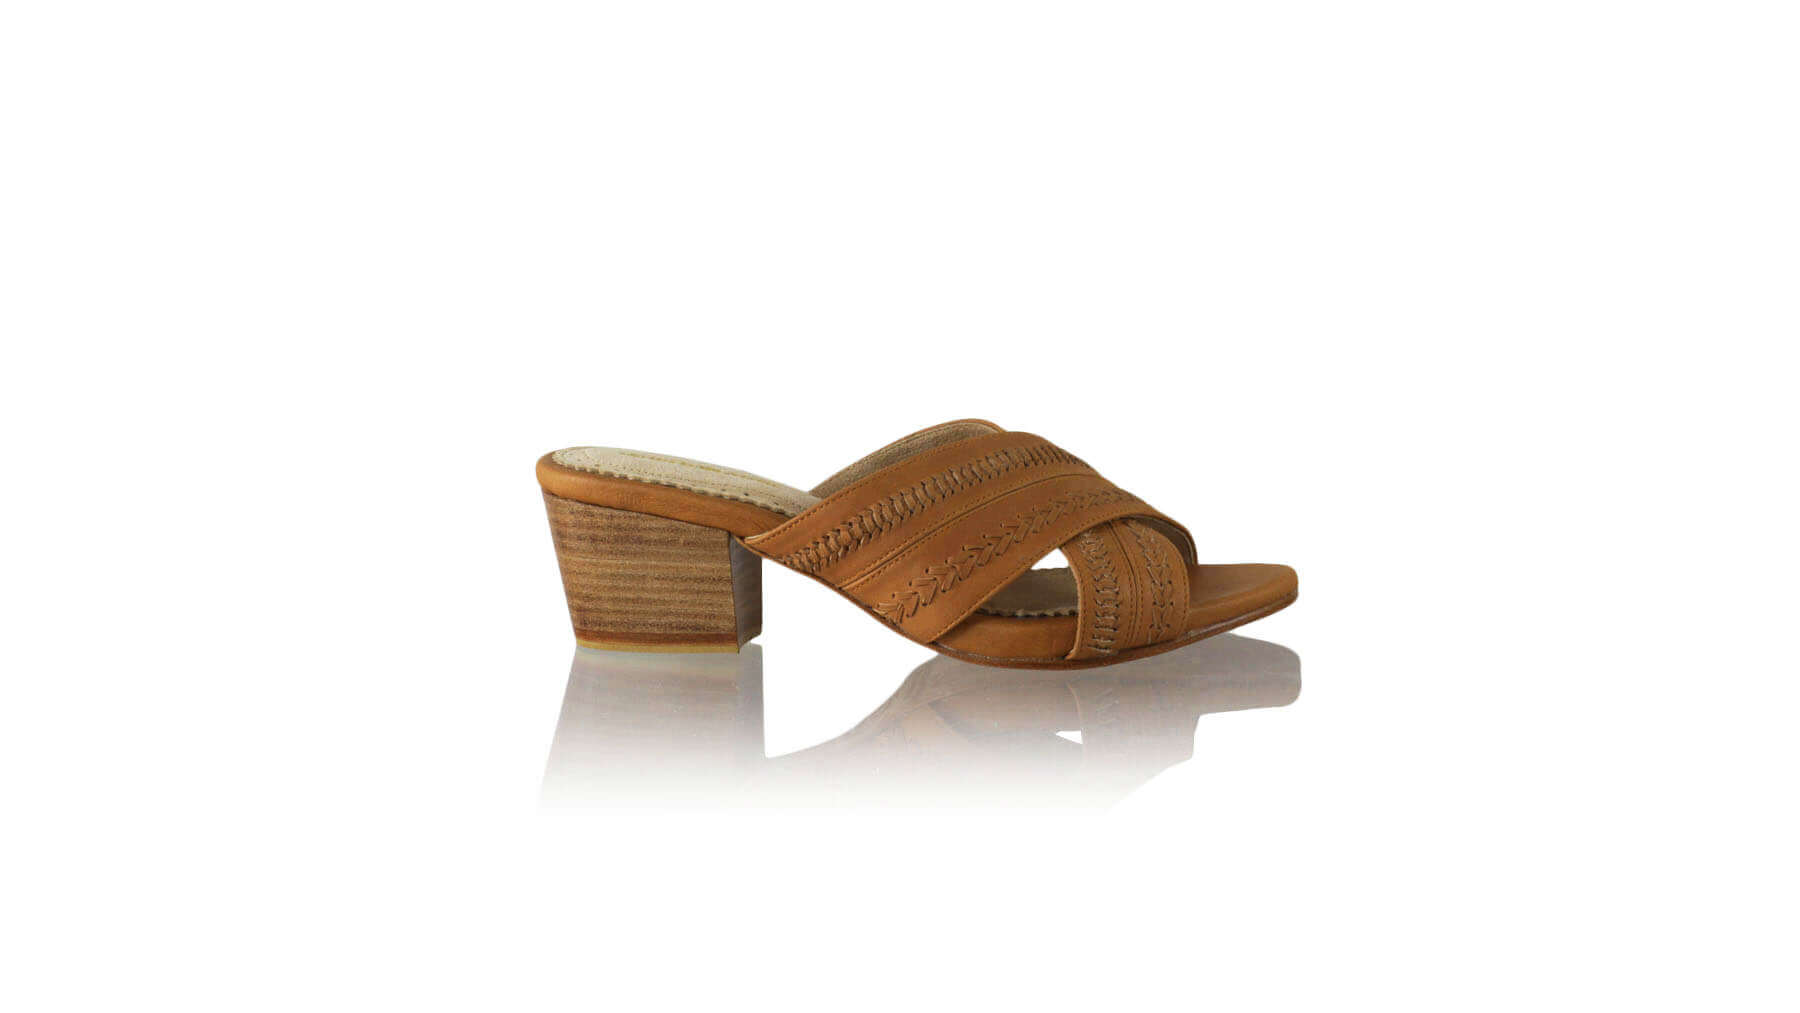 Leather-shoes-Paramita 50mm WH - Light Brown Camel-sandals midheel-NILUH DJELANTIK-NILUH DJELANTIK